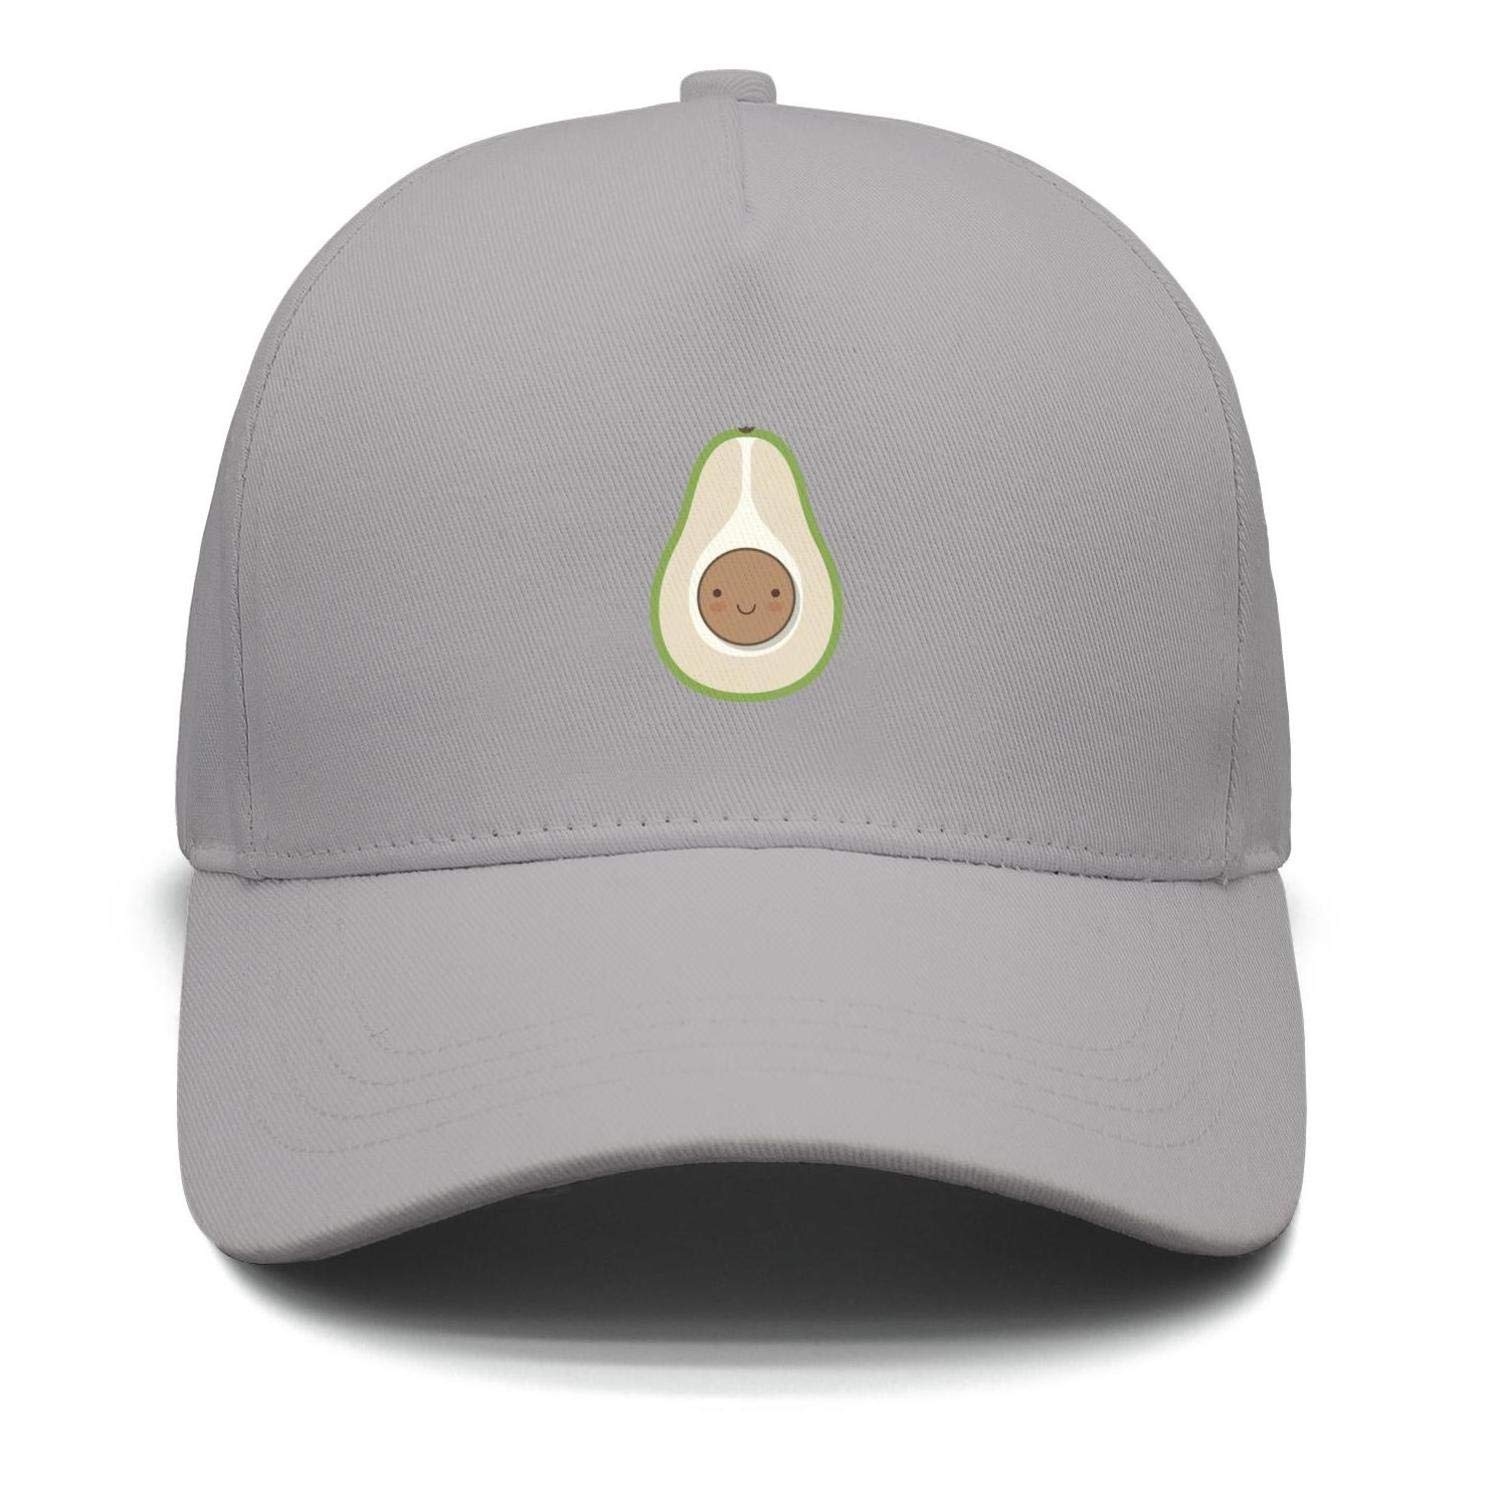 8c167b86b3cf AVOCADO Cotton Embroidery Adjustable Baseball Cap Baseball Hat Dad Hat from  Skyed Apparel (Multiple Colors